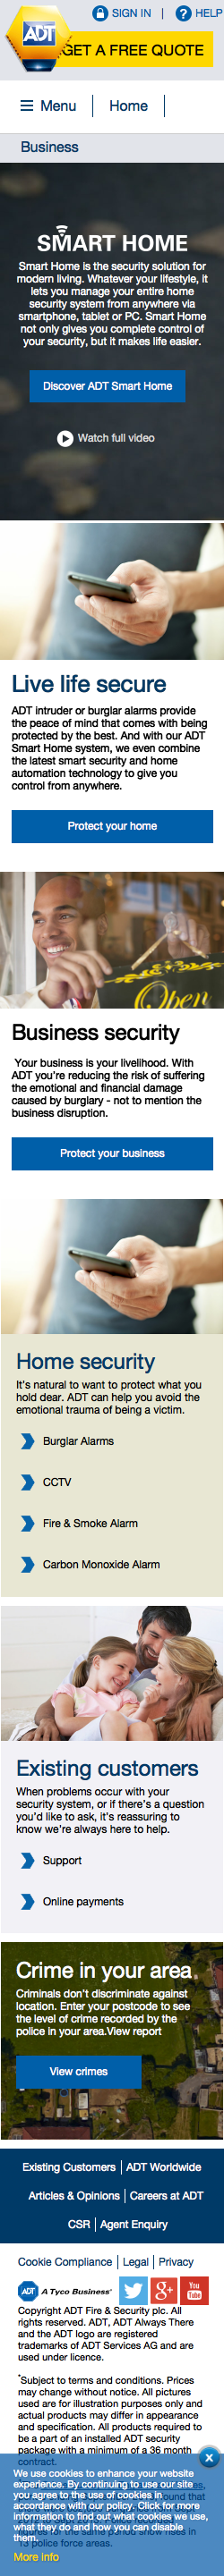 ADT Fire Security